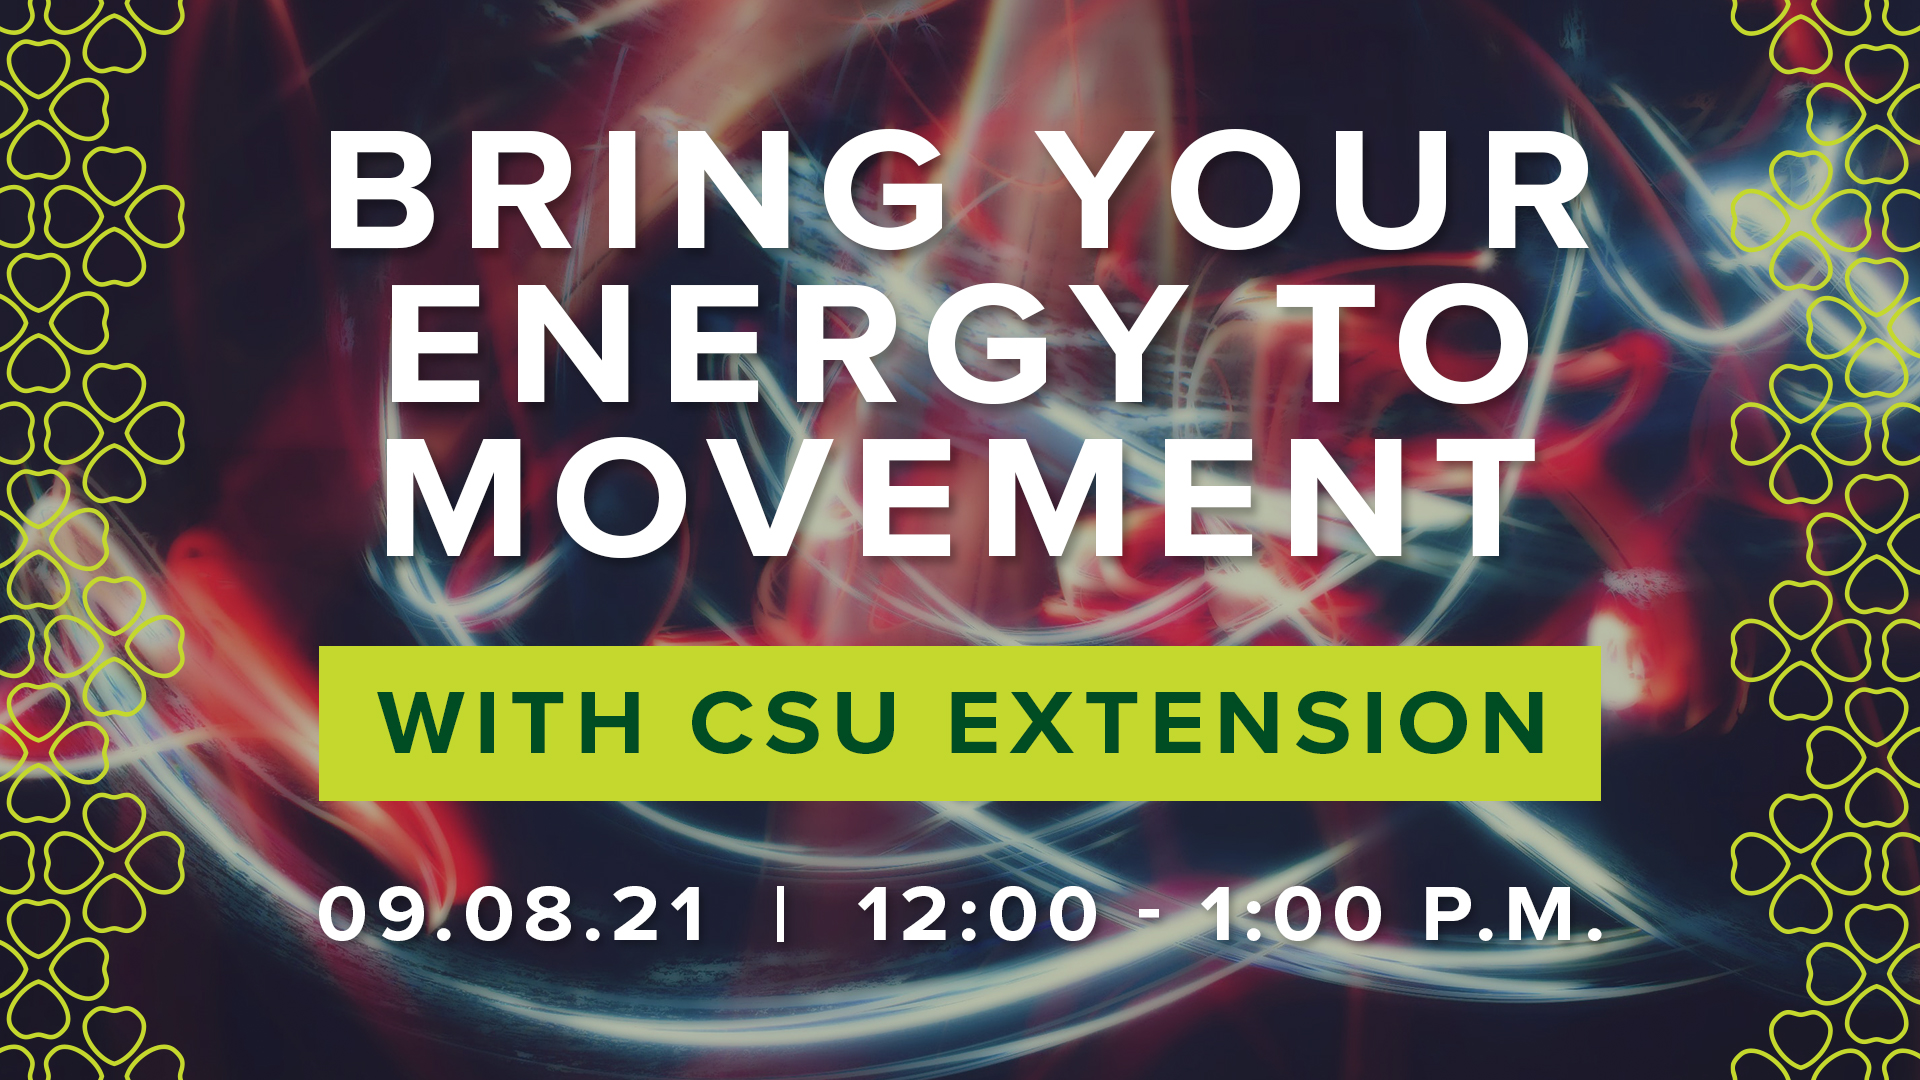 Image for Bring Your Energy to Movement with CSU Extension webinar